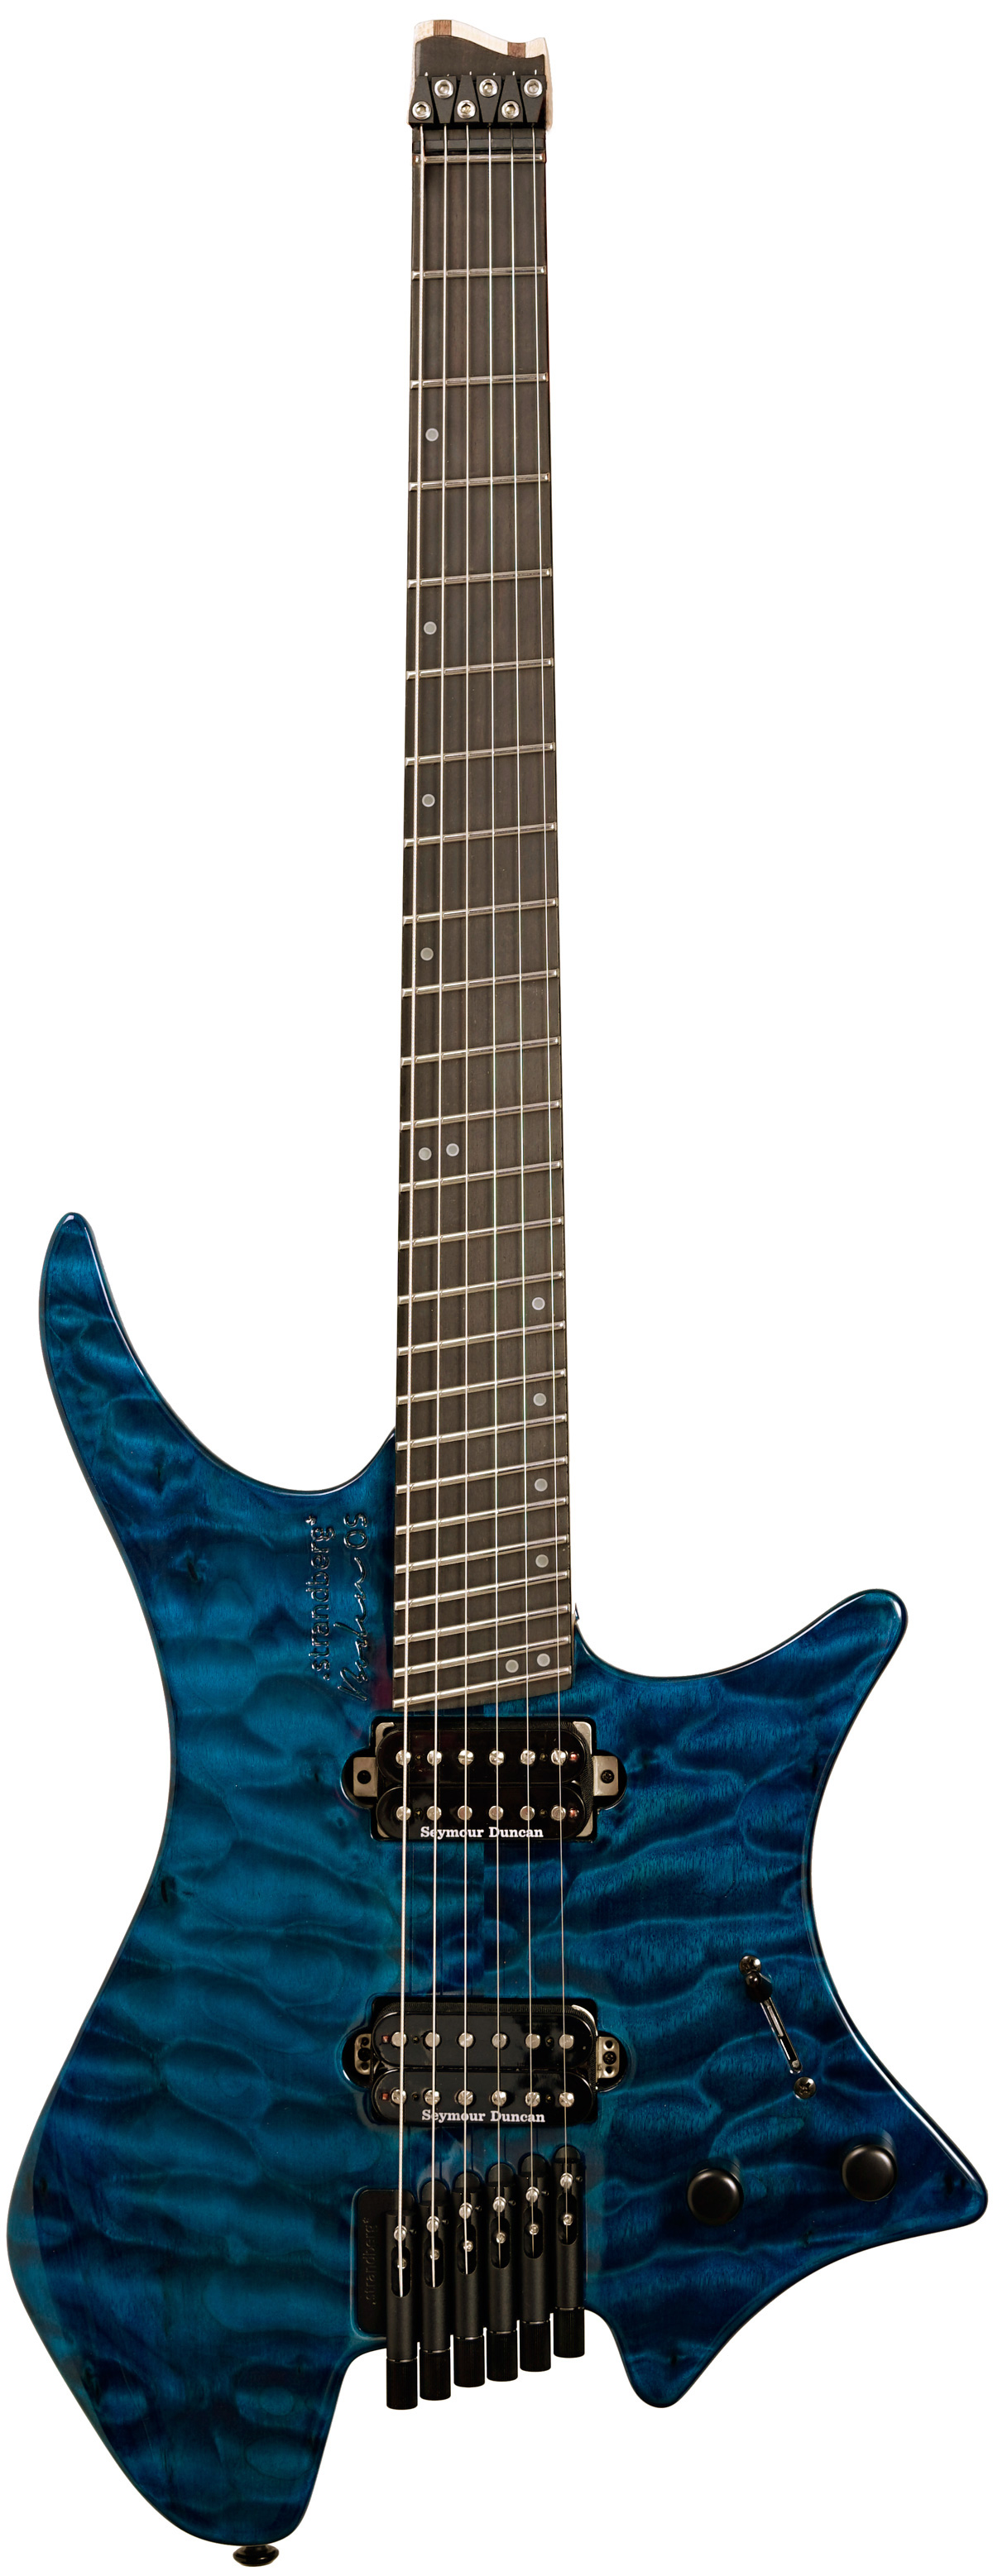 strandberg boden os 6 limited edition blue quilt ebony board. Black Bedroom Furniture Sets. Home Design Ideas